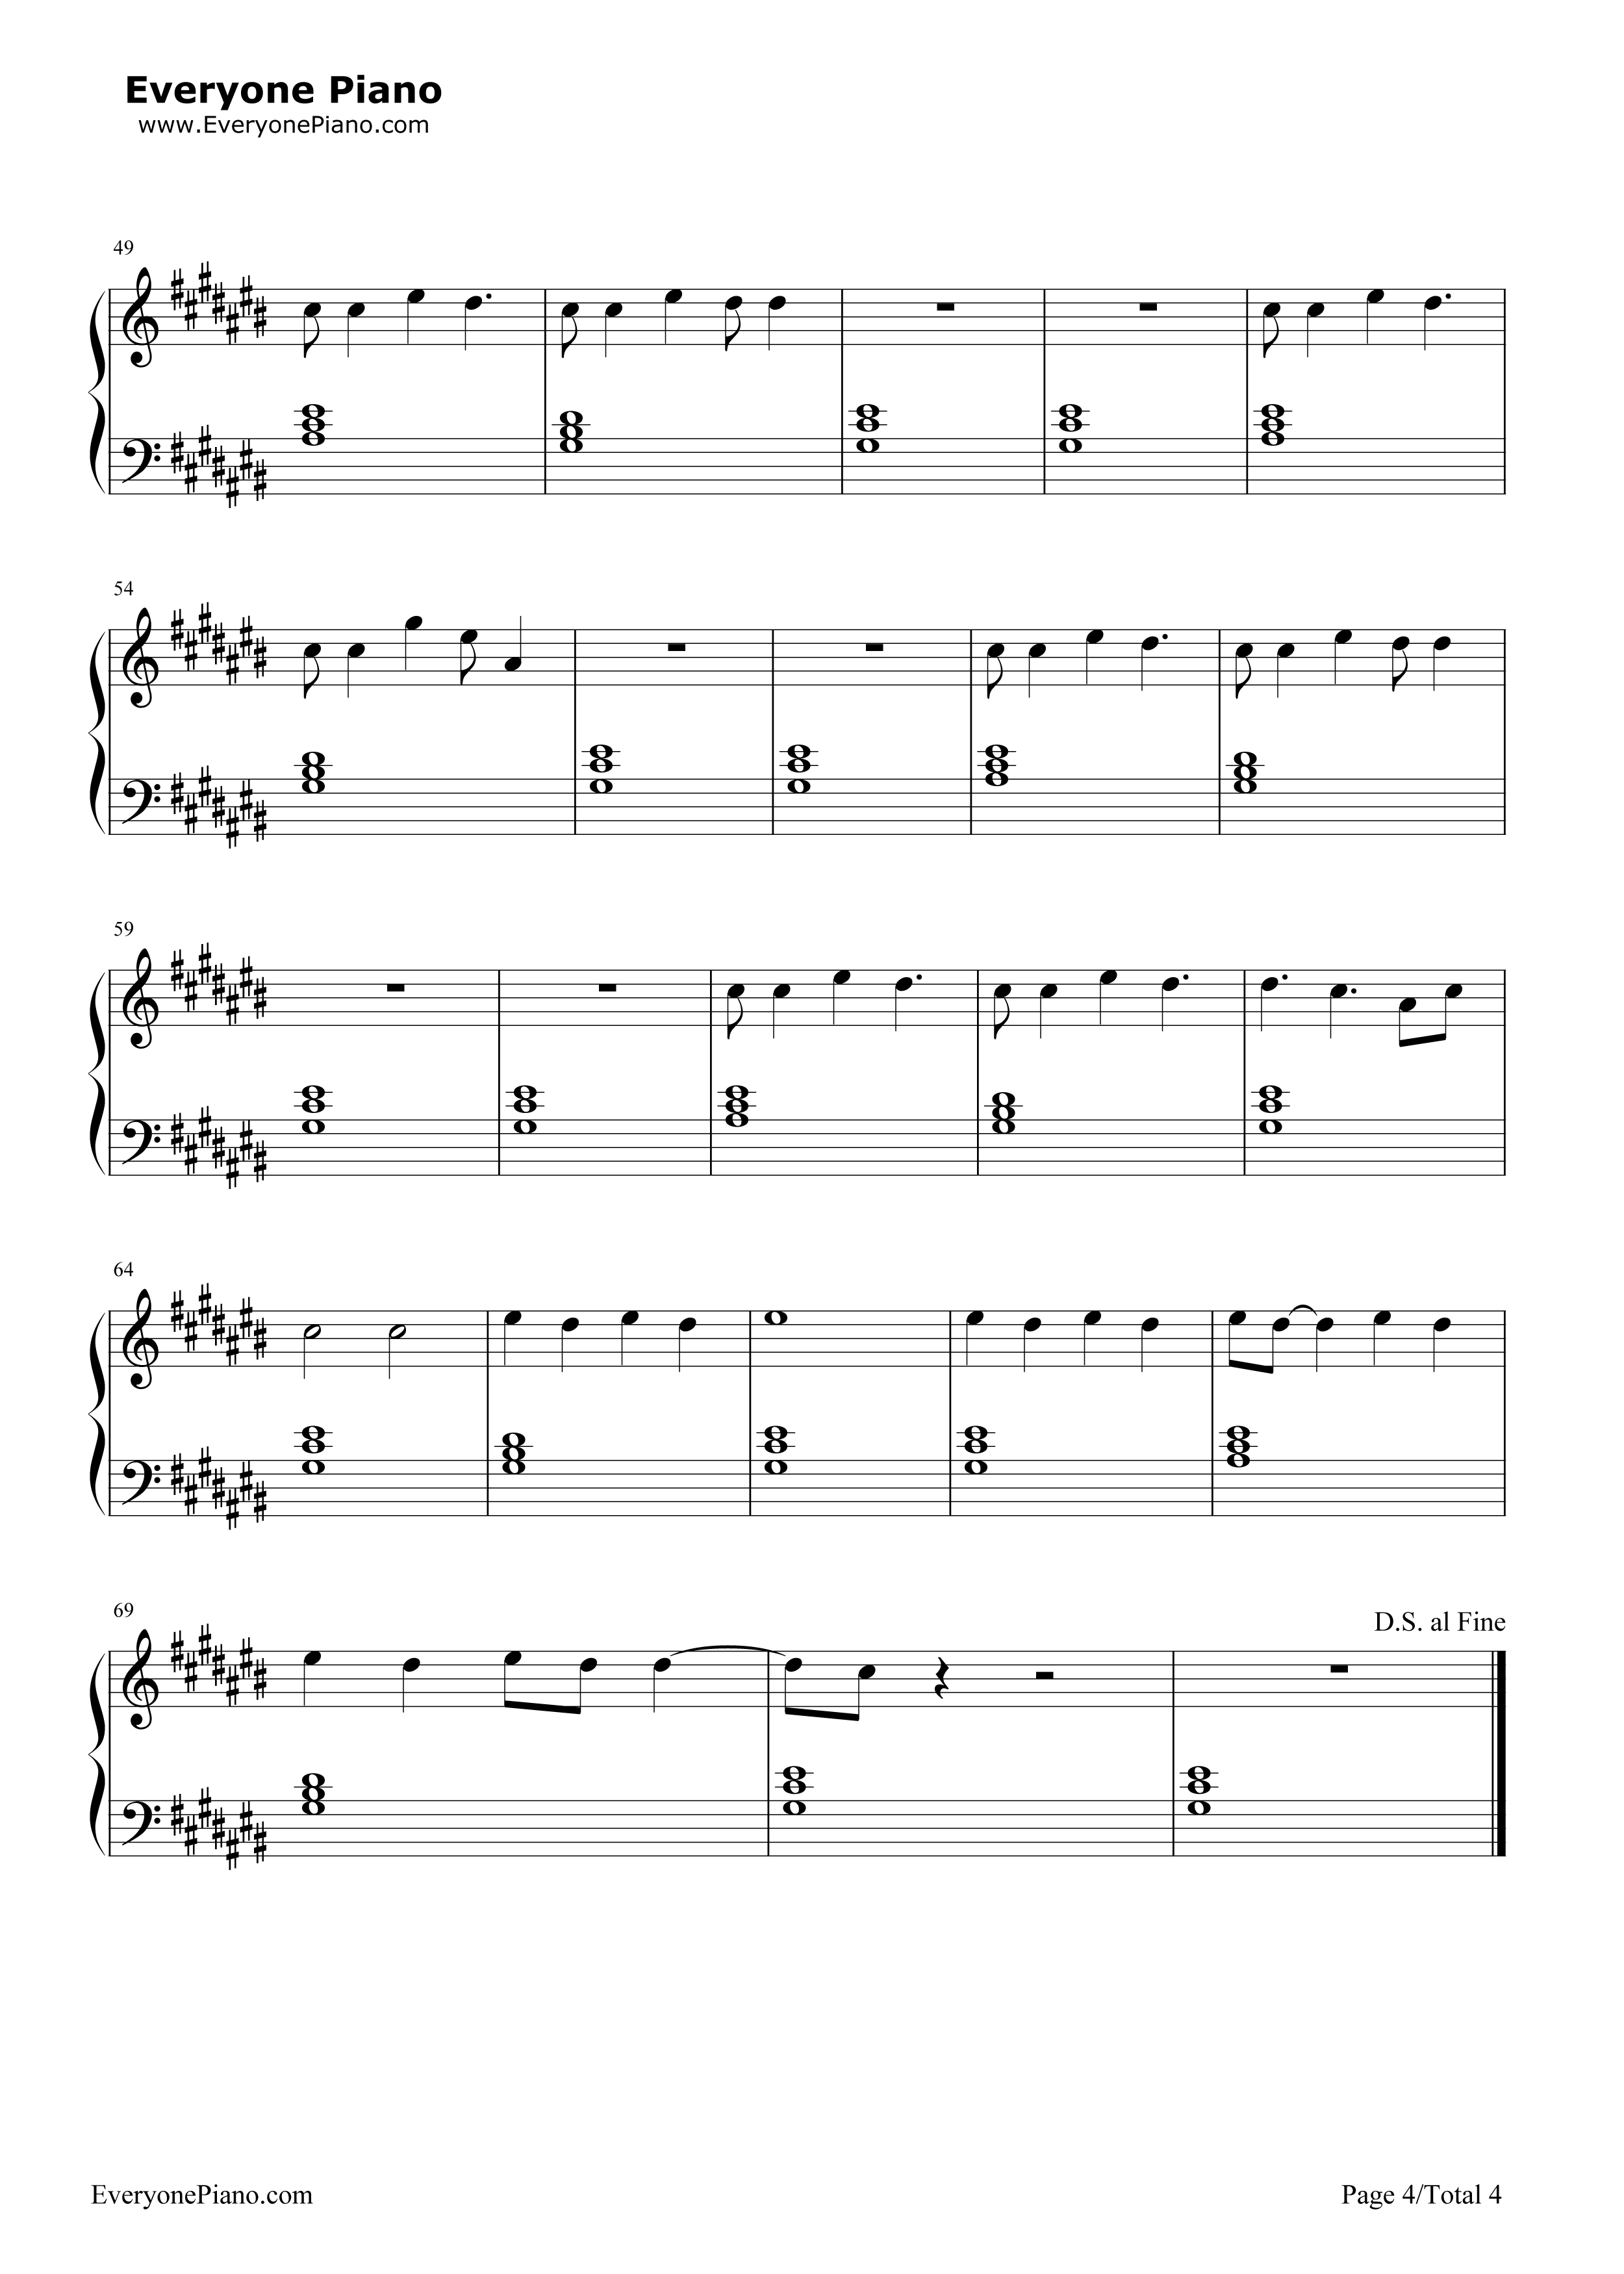 Riptide-Vance Joy Stave Preview 4-Free Piano Sheet Music u0026 Piano Chords